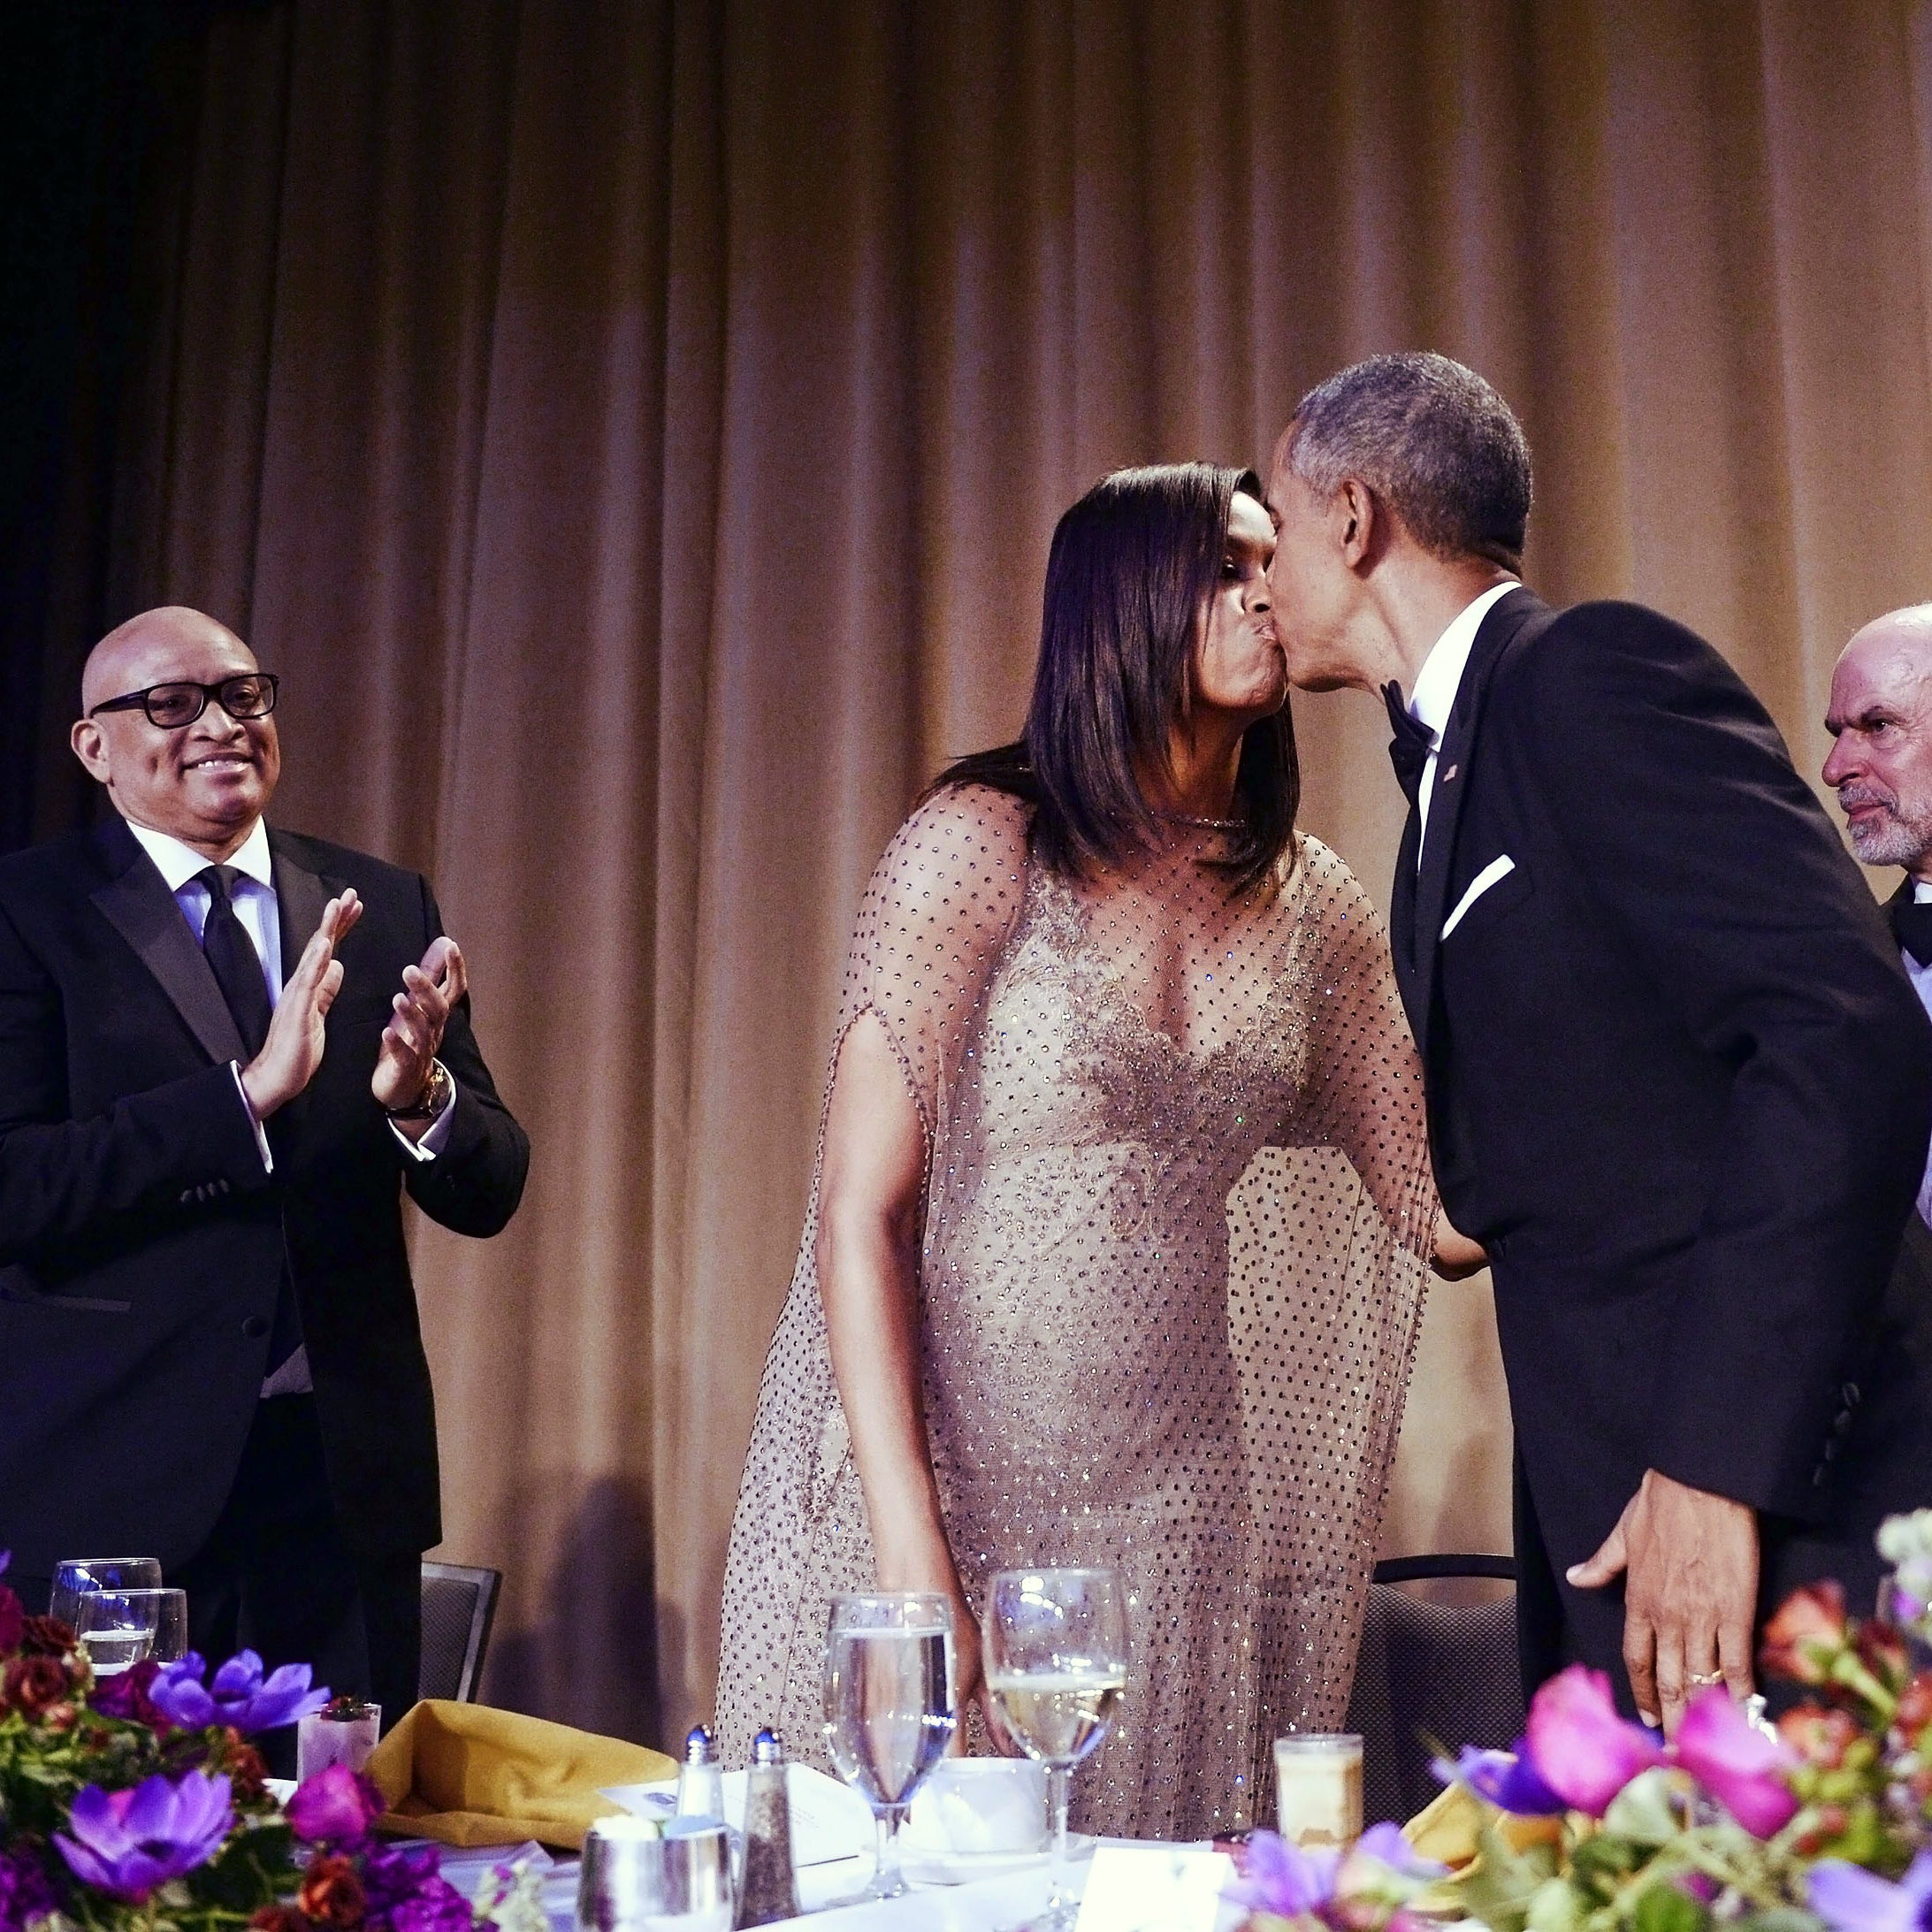 First Lady Michelle Obama Sends a Sweet Birthday Message to Hubby President Obama